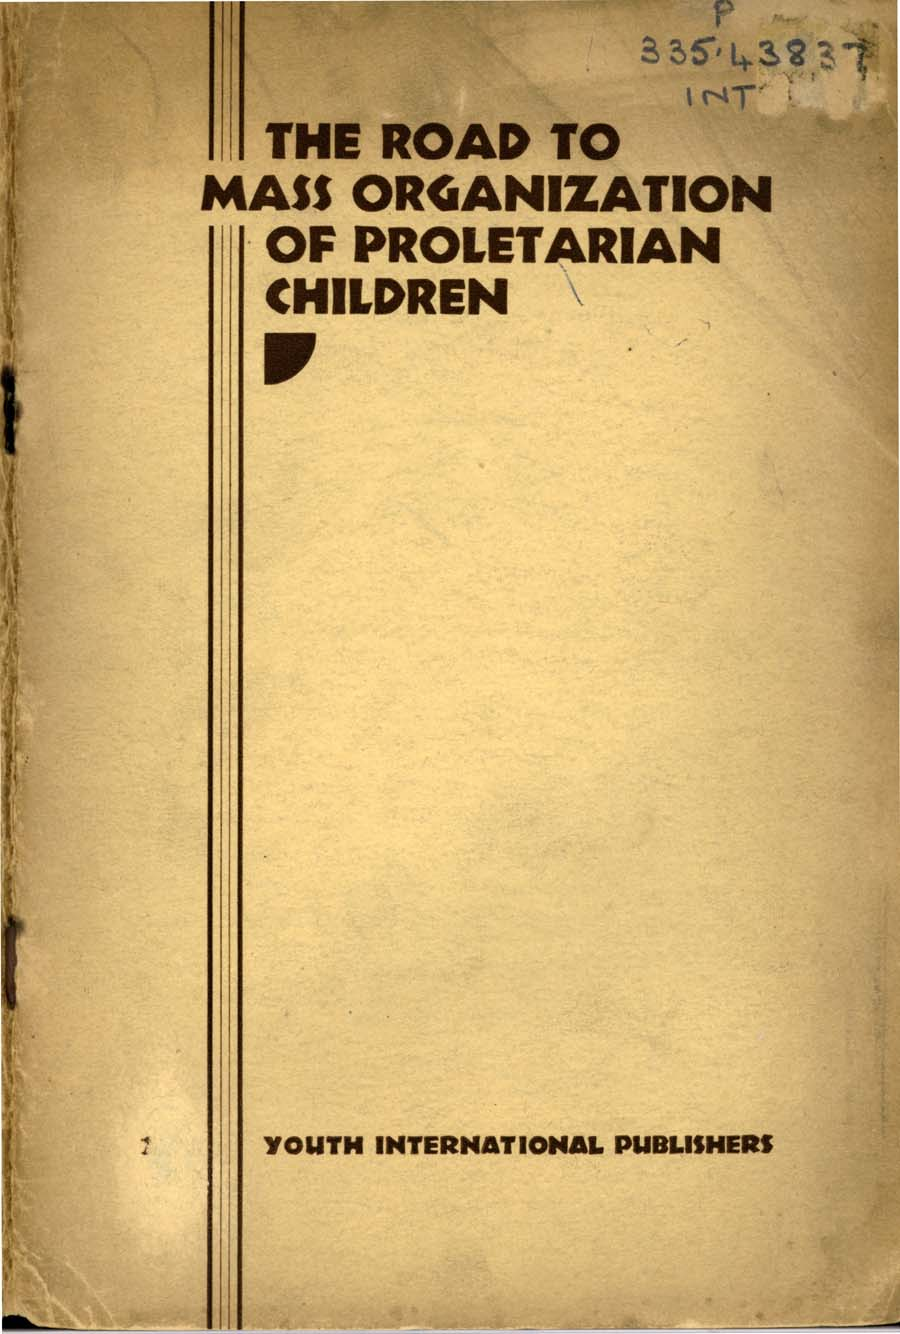 Cover of 'The road to mass organization of proletarian children' 1930.